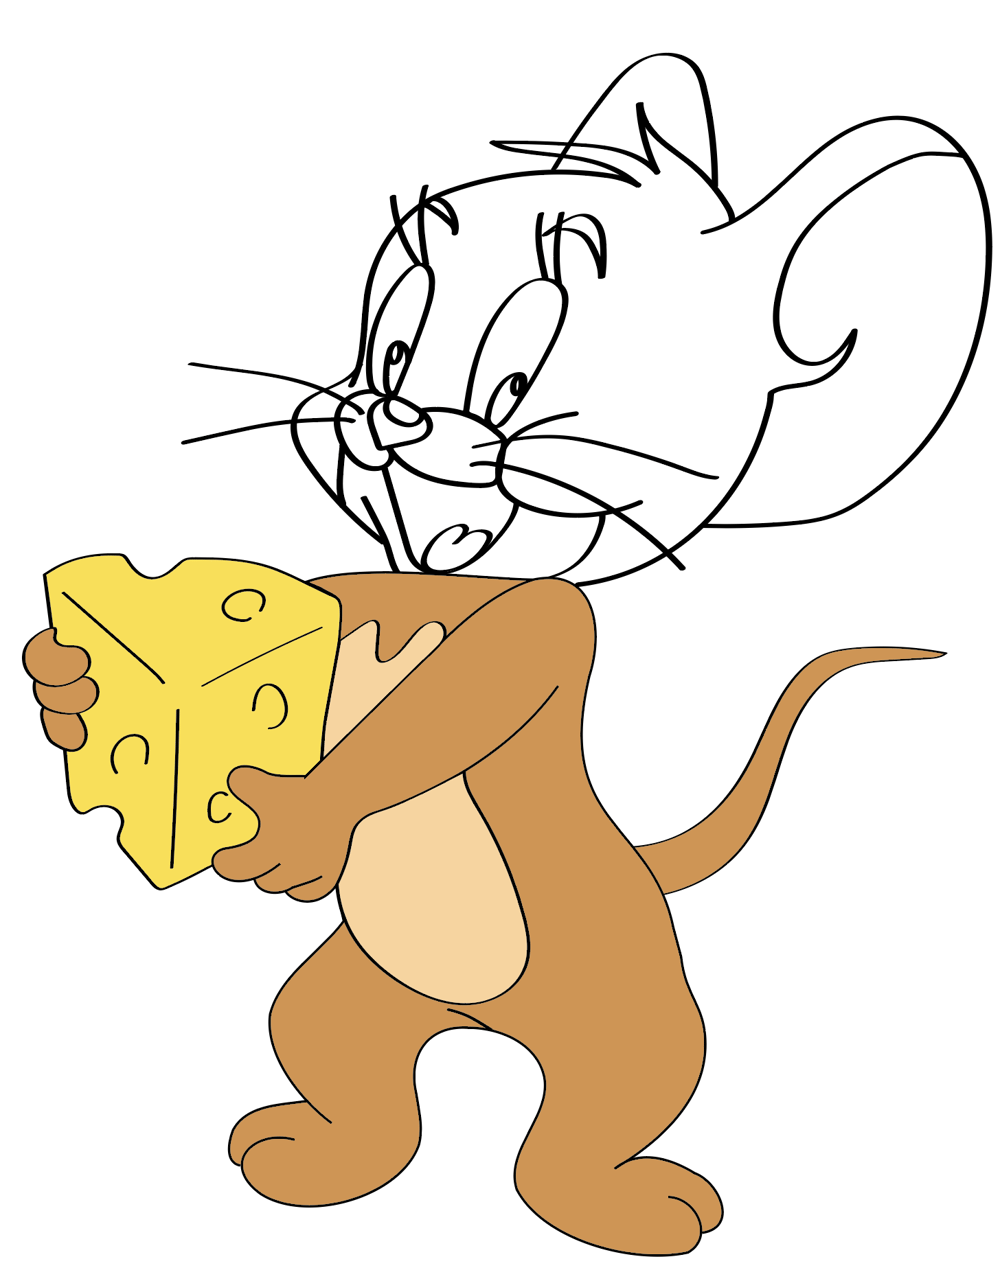 Jerry in Illustrator - image 2 - student project